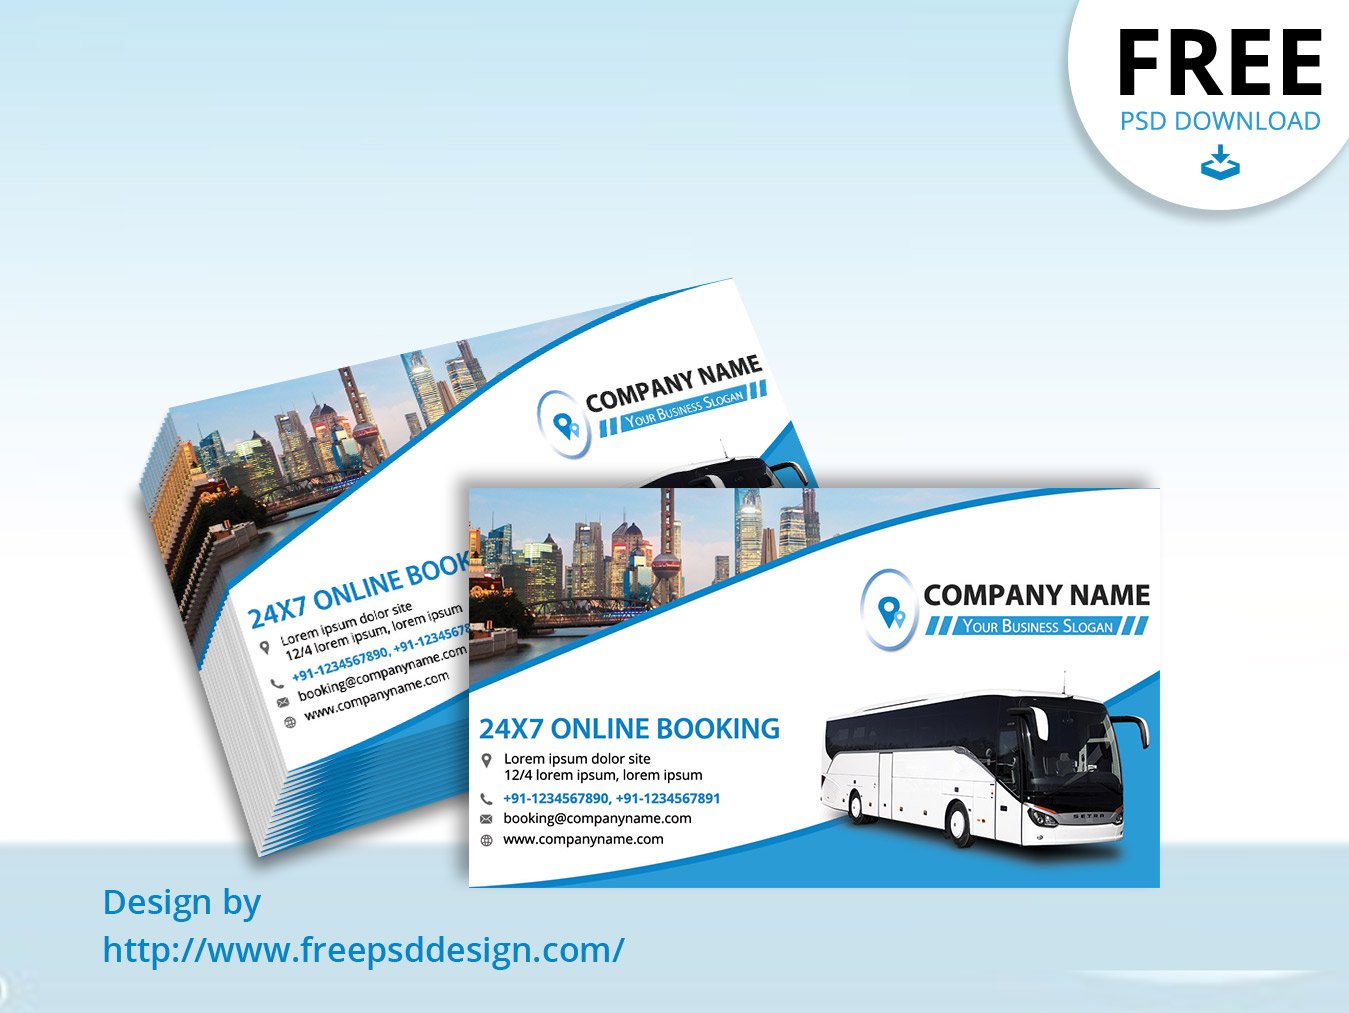 Travels Business Card Mockup PSD Template